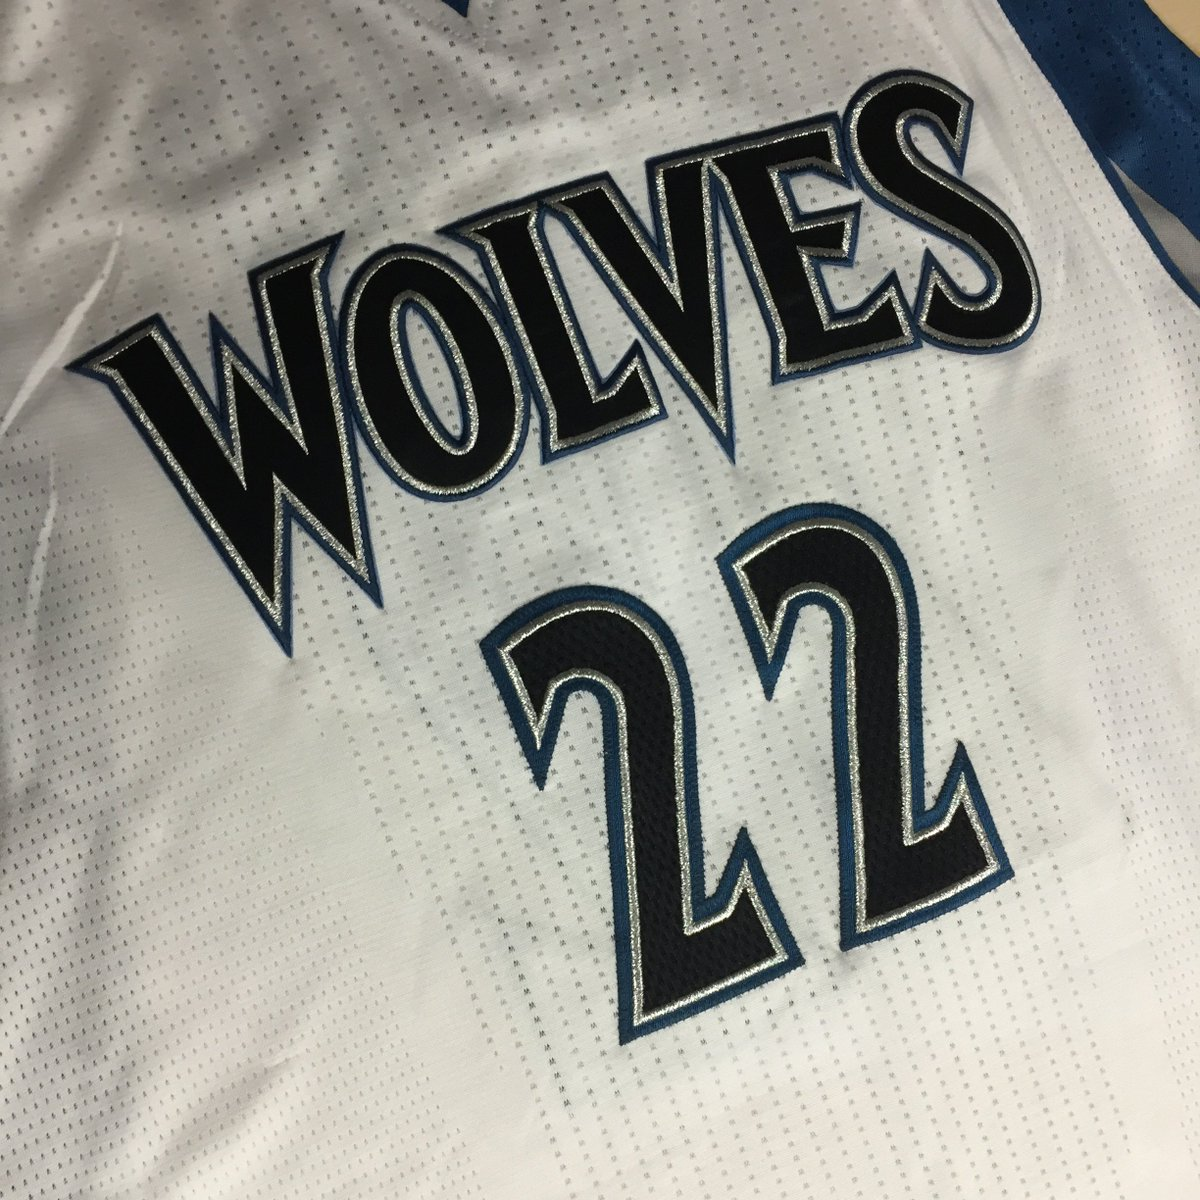 Tis the season for giving. We want to give you a signed Wolves jersey! Follow & RT to win. https://t.co/OwEI28IgKG. https://t.co/oT7fzelswY